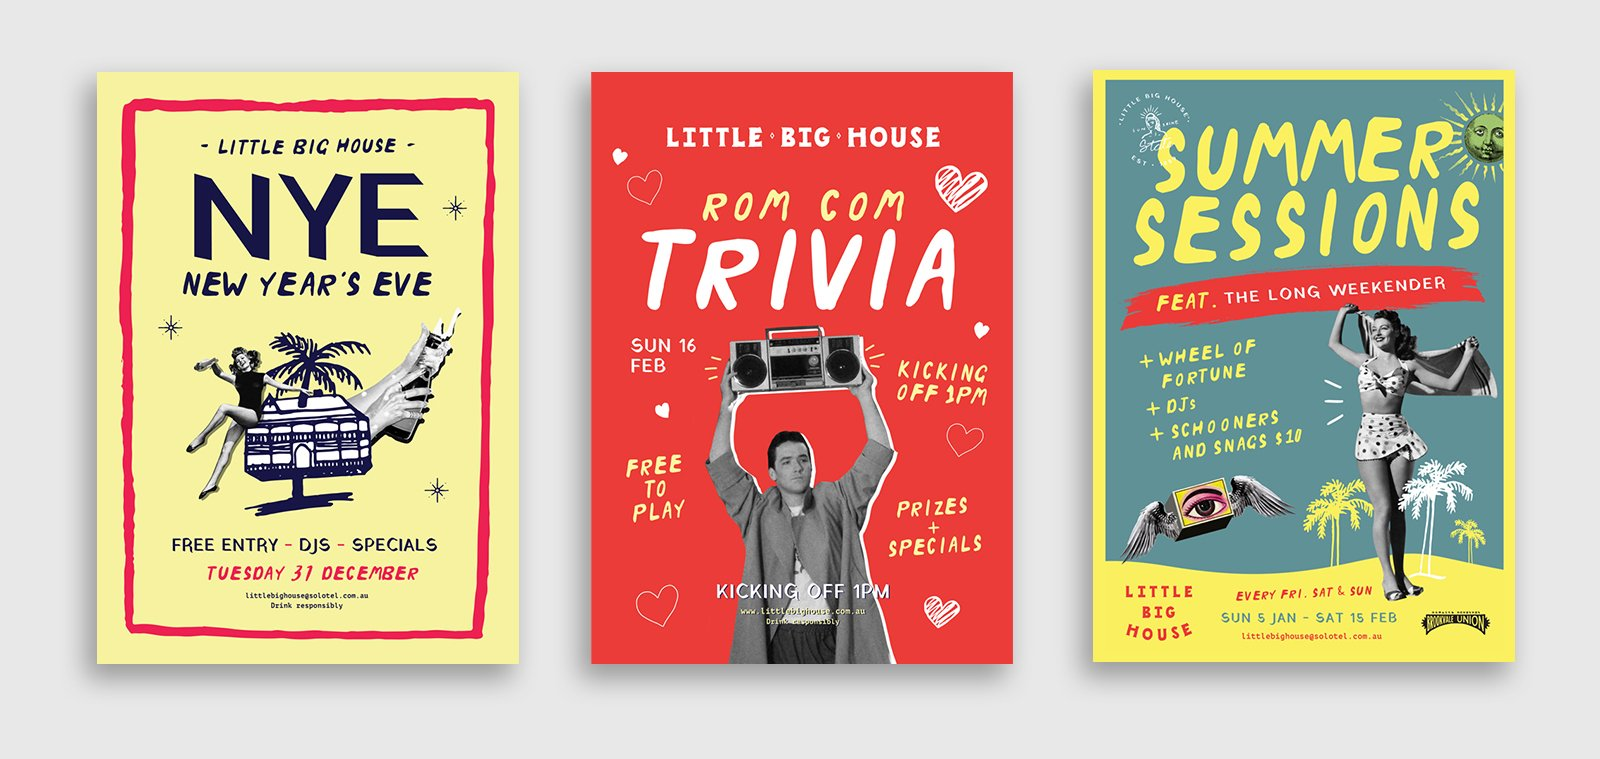 three different poster designs for events at the little big house venue in queensland